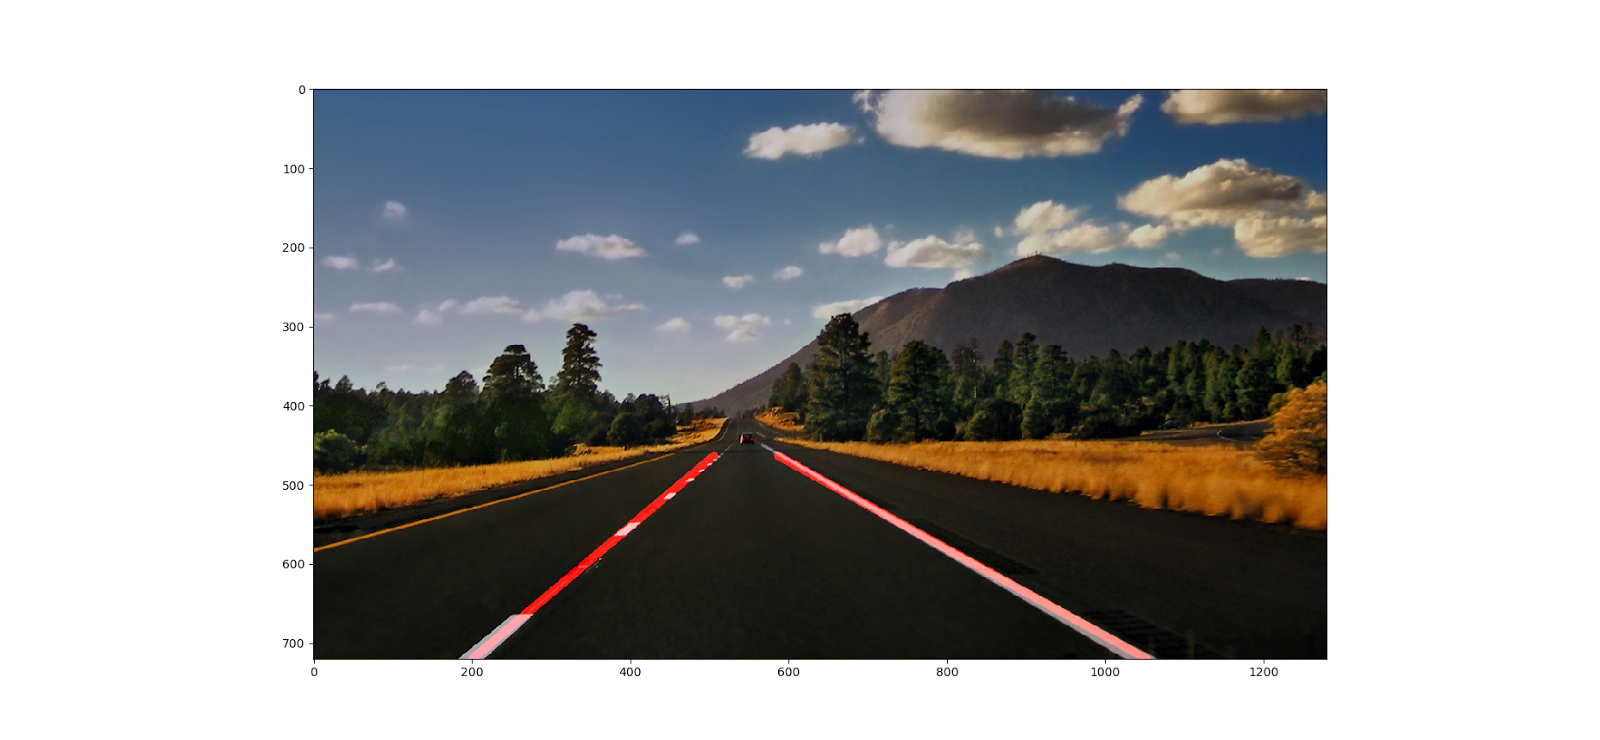 Project #1: Lane Detection with OpenCV